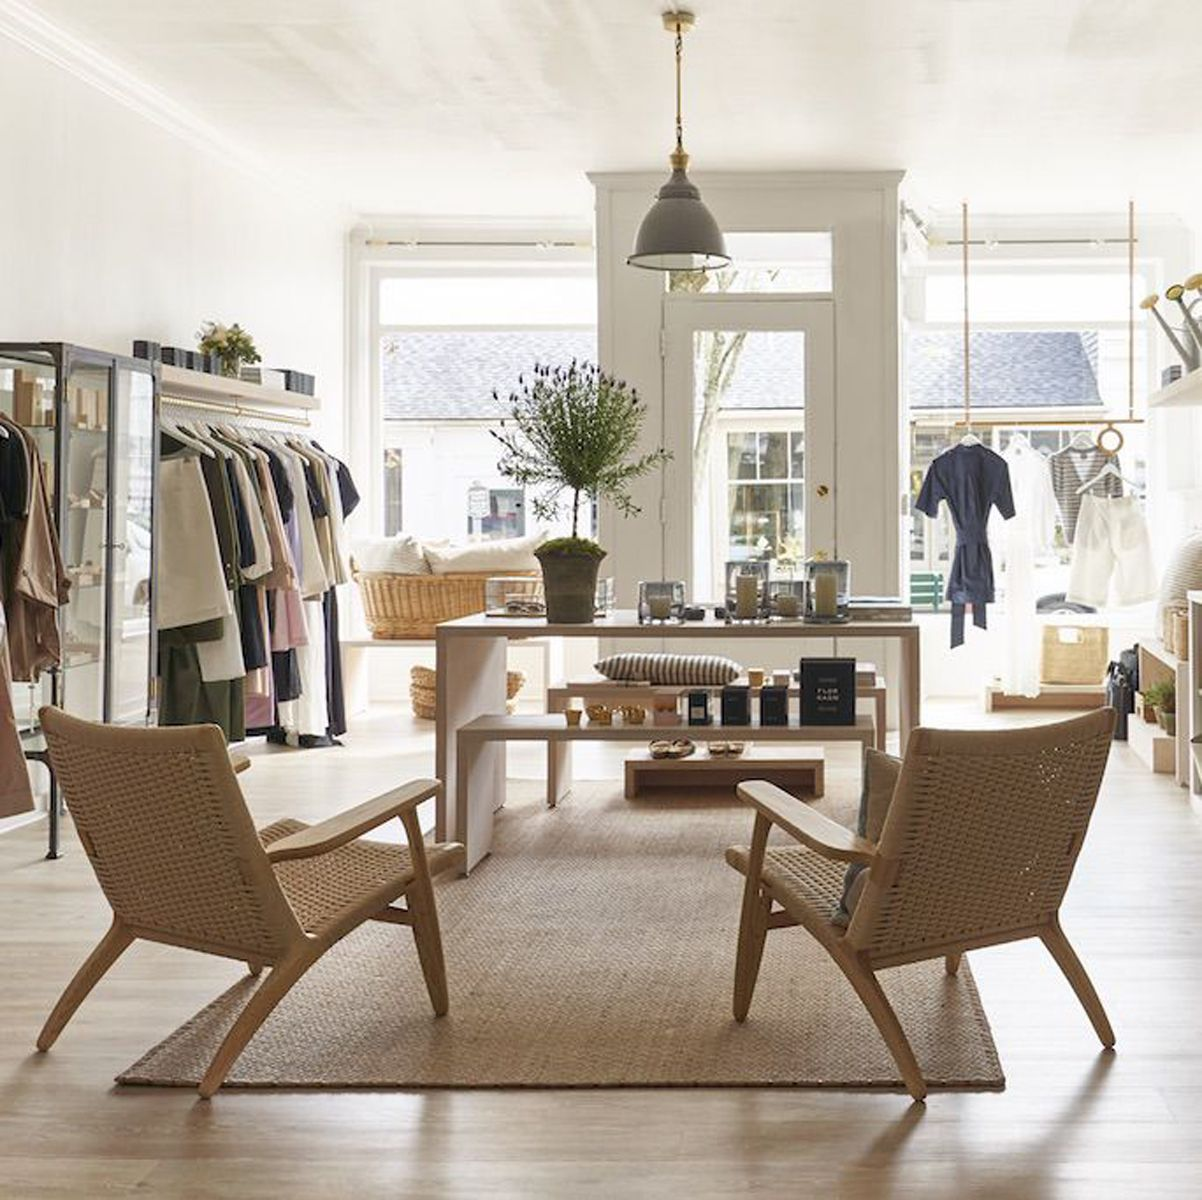 Goop's New Nantucket Store Looks Like the Ideal Summer Home